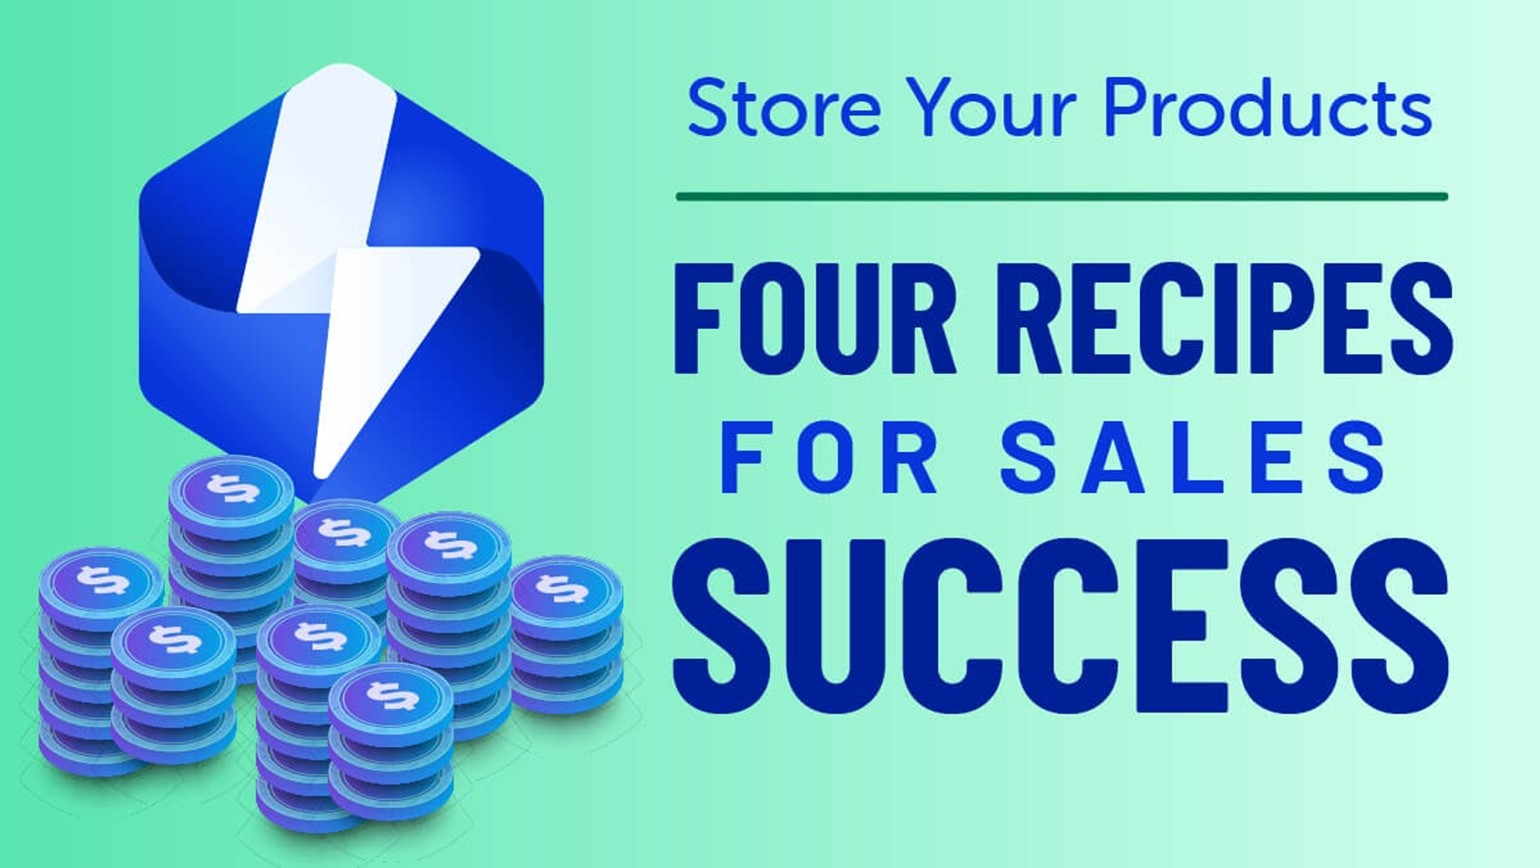 Four Recipes for Sales Success